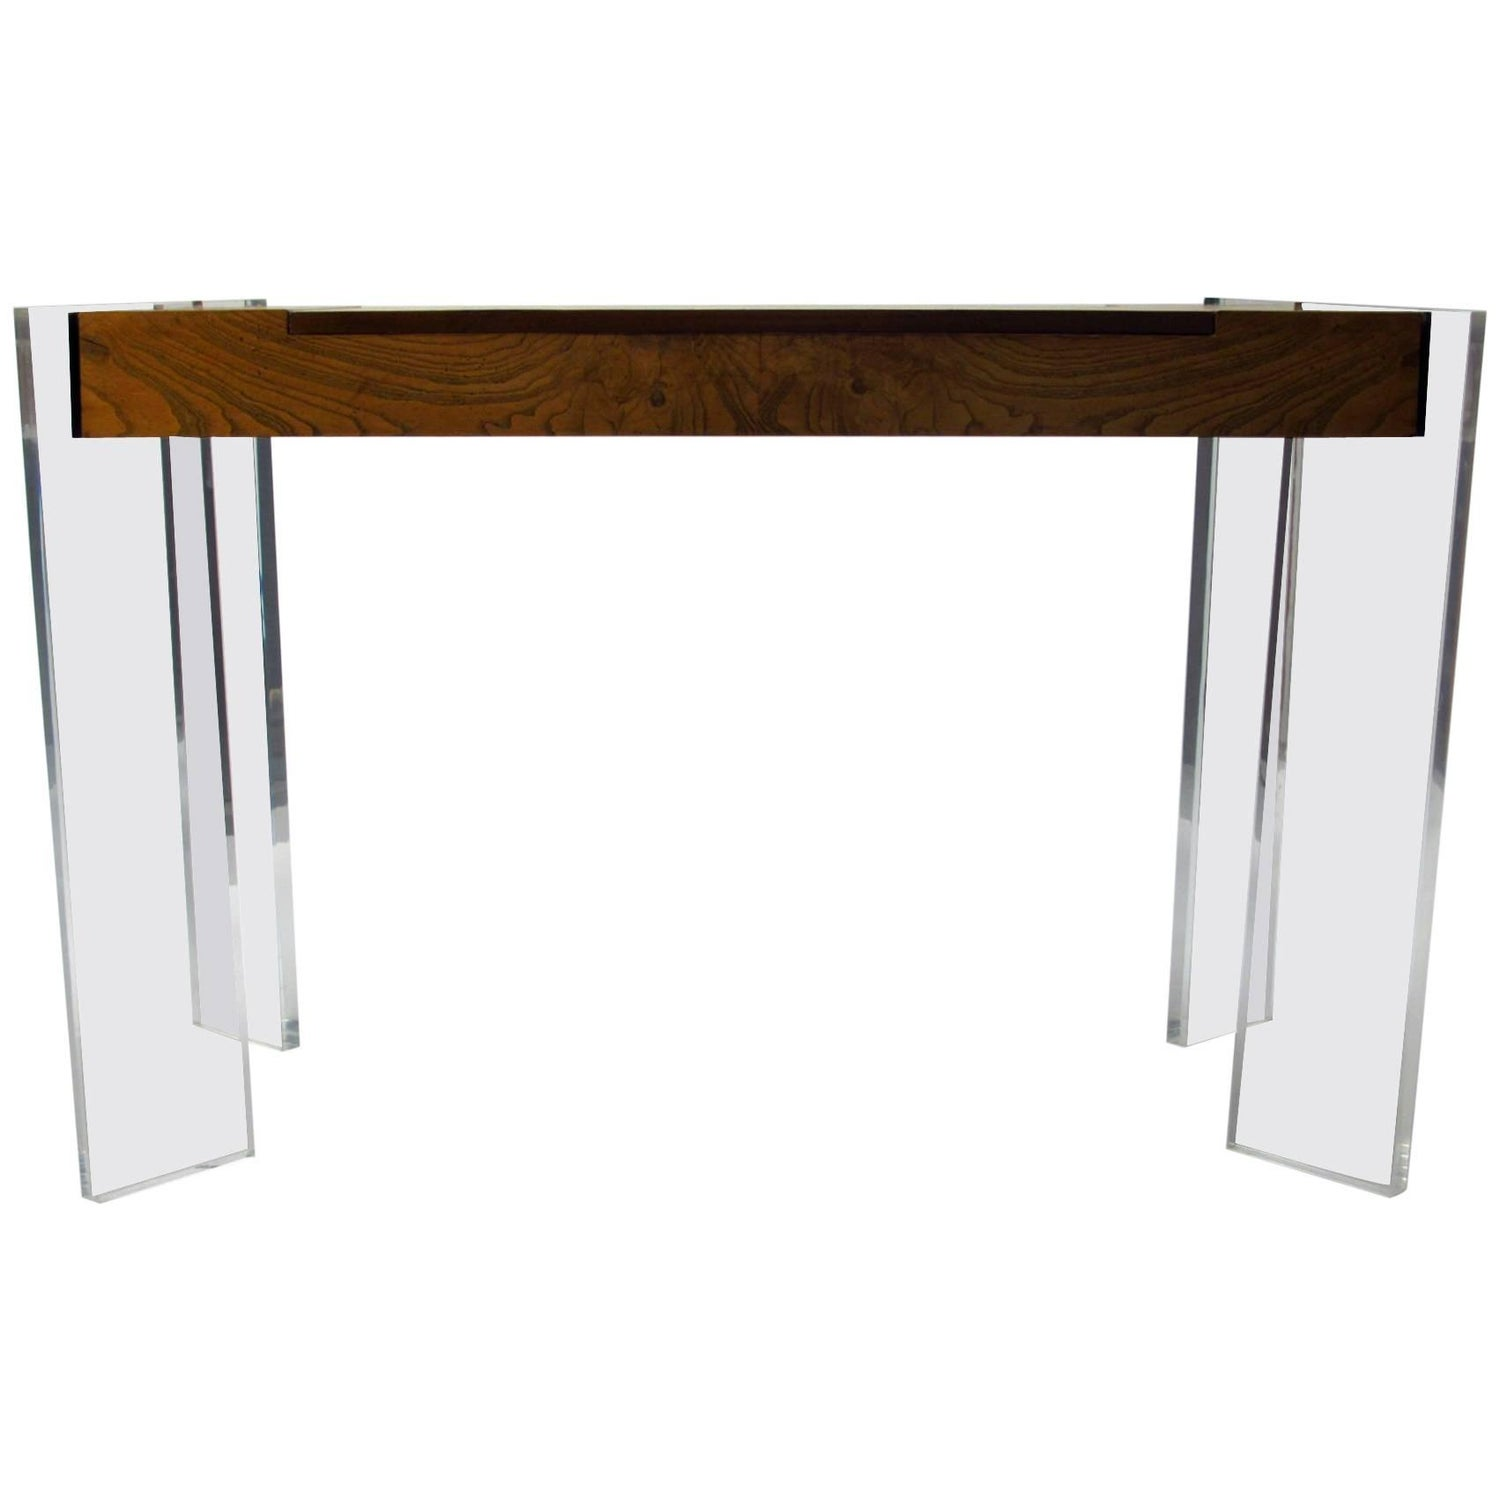 Vladimir Kagan Mid Century Modern Game Table For Sale at 1stdibs